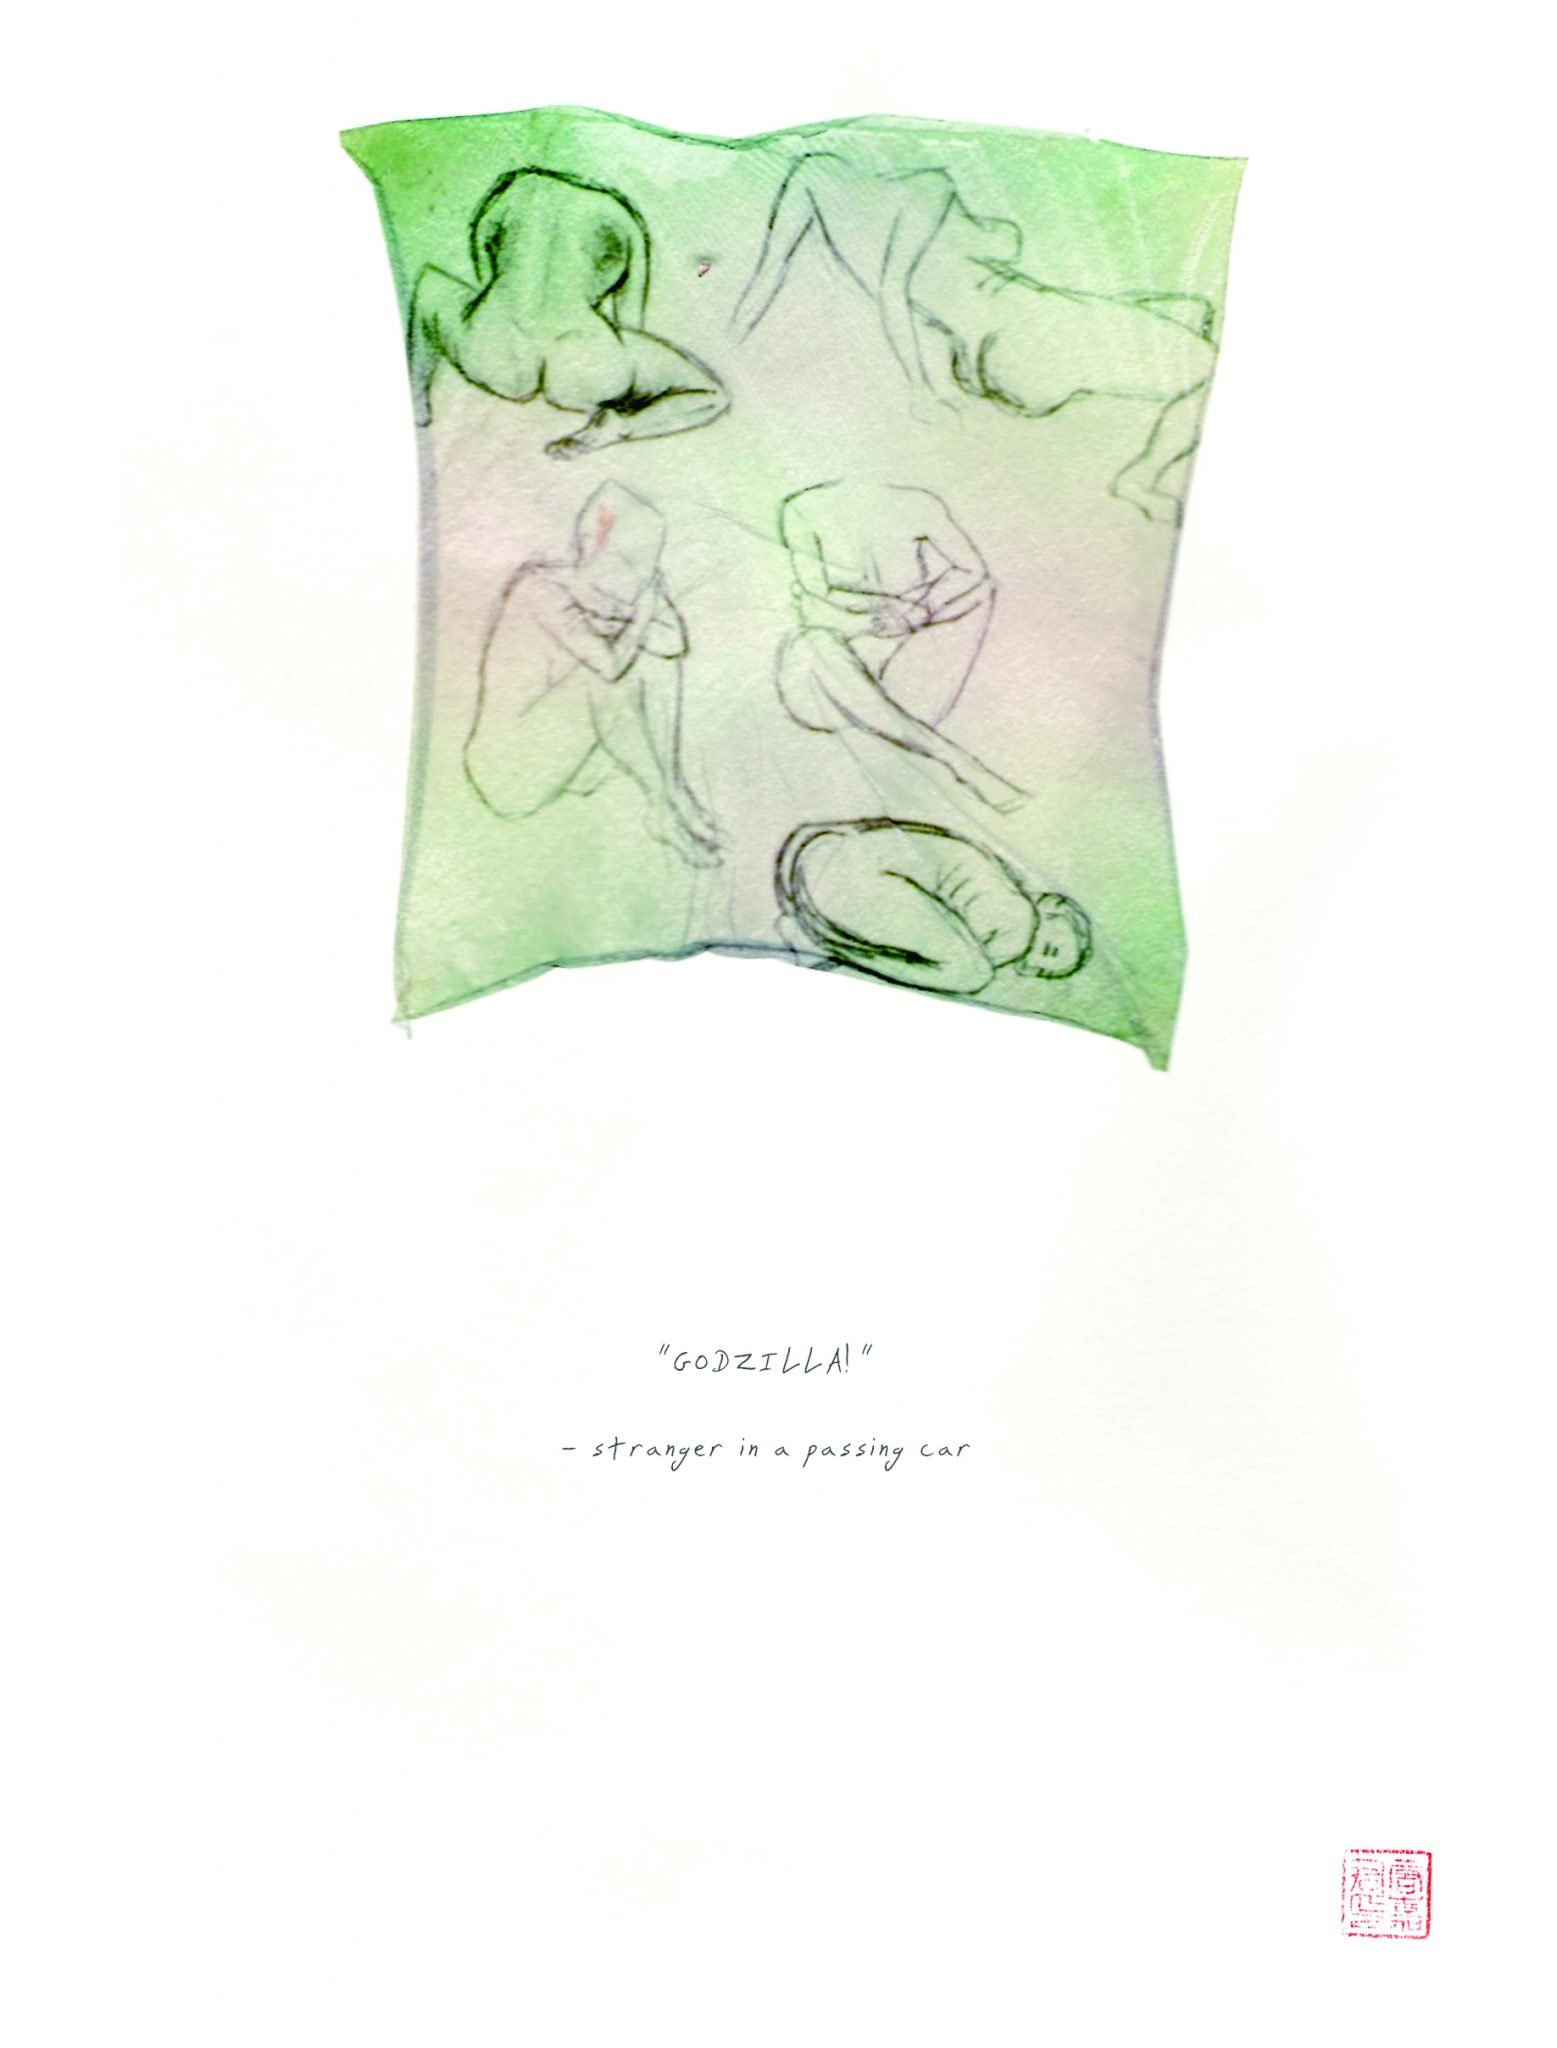 """polaroid emulsion of of artist sketches and word """"Godzilla"""""""